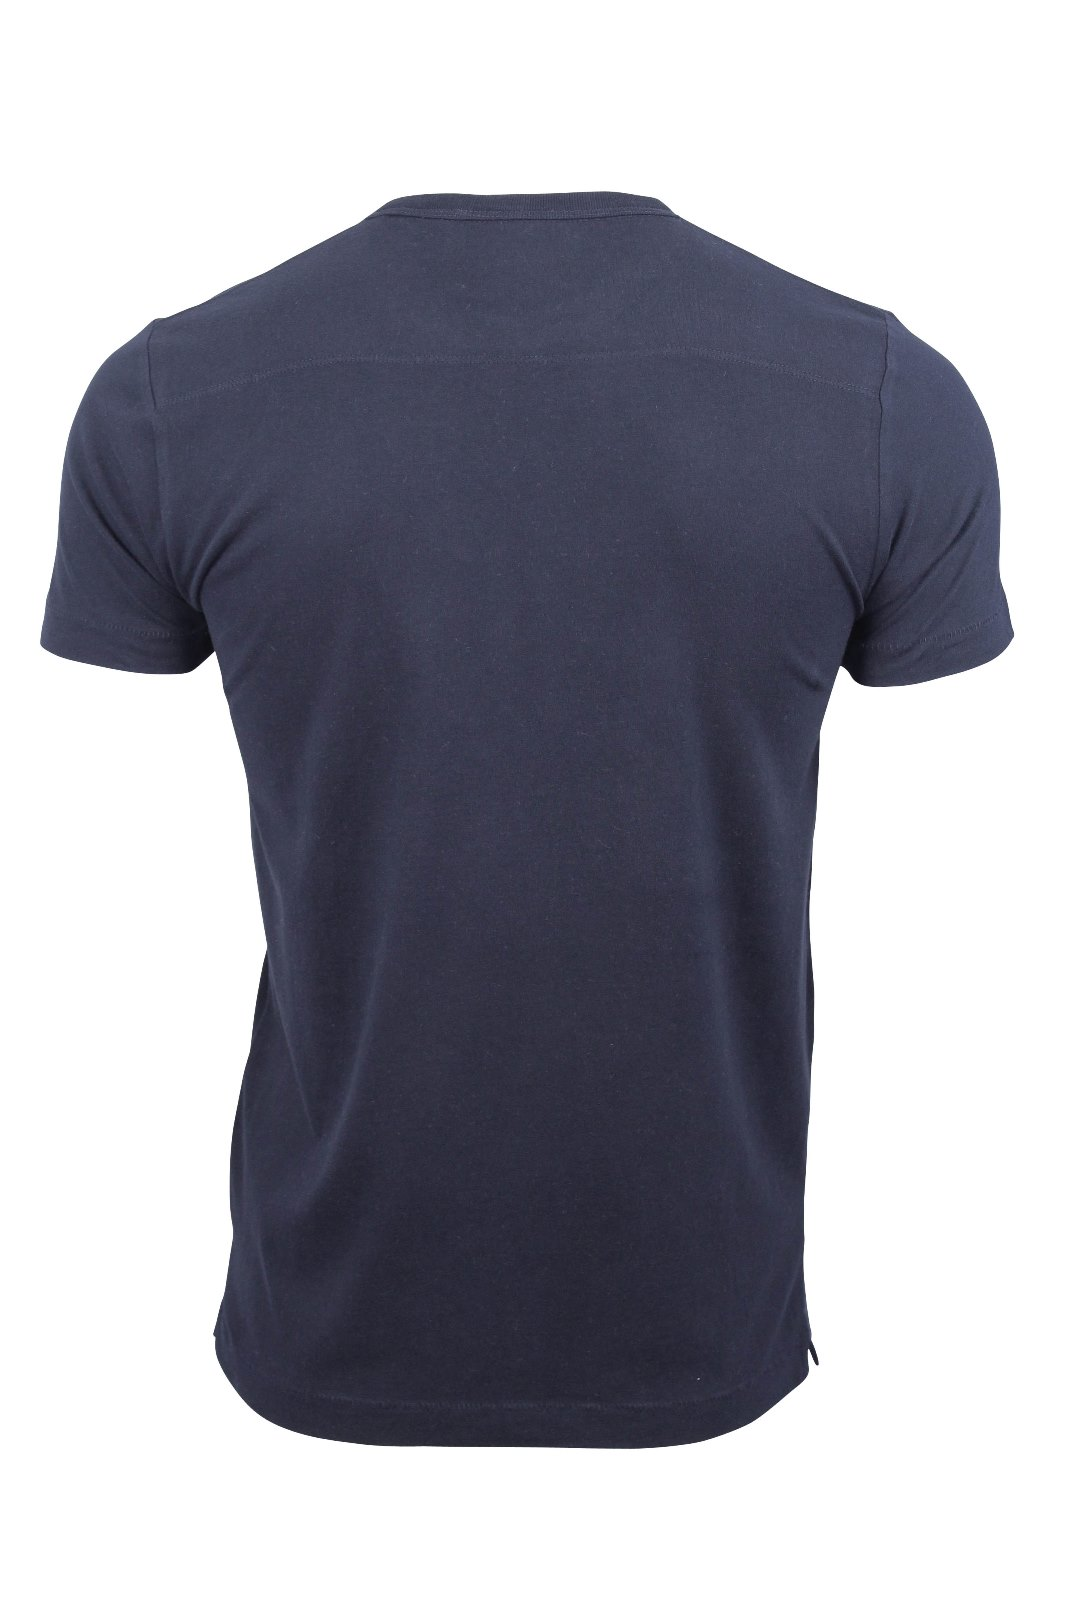 French connection fcuk t shirt seal marlon crew neck for French cut shirt sleeve